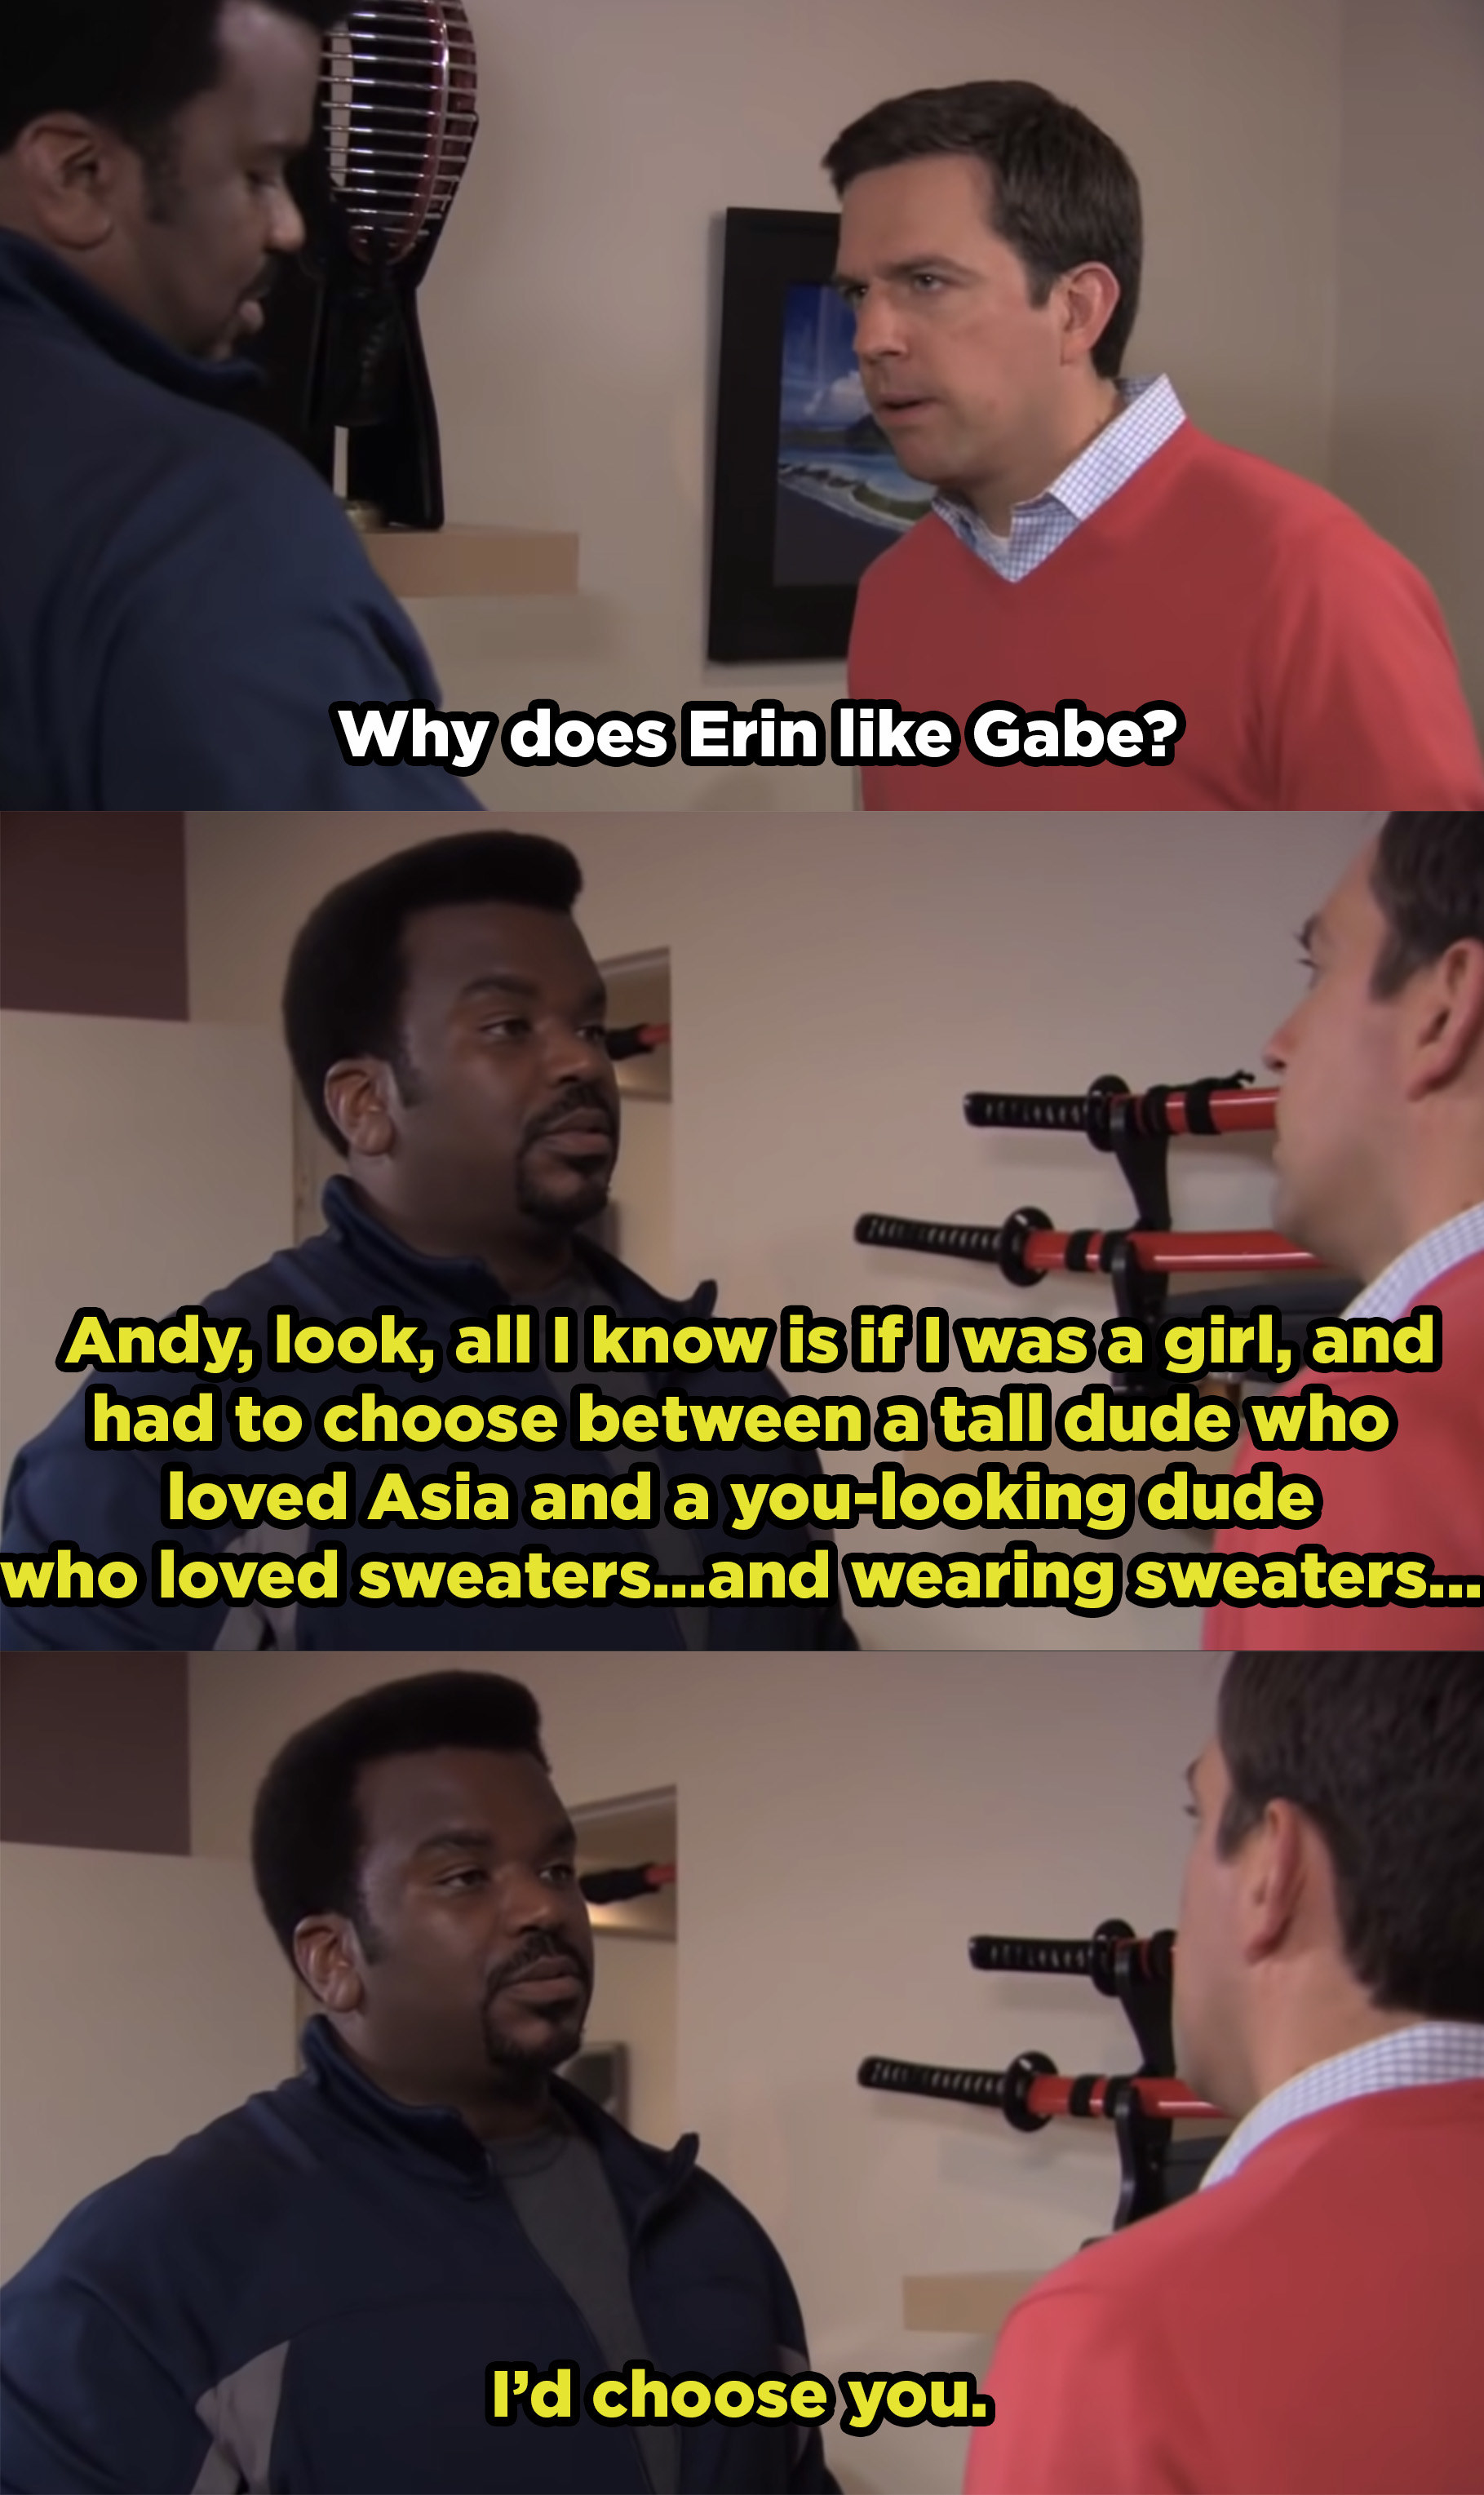 Darryl tells Andy that if he were a girl, he'd choose Andy over Gabe.